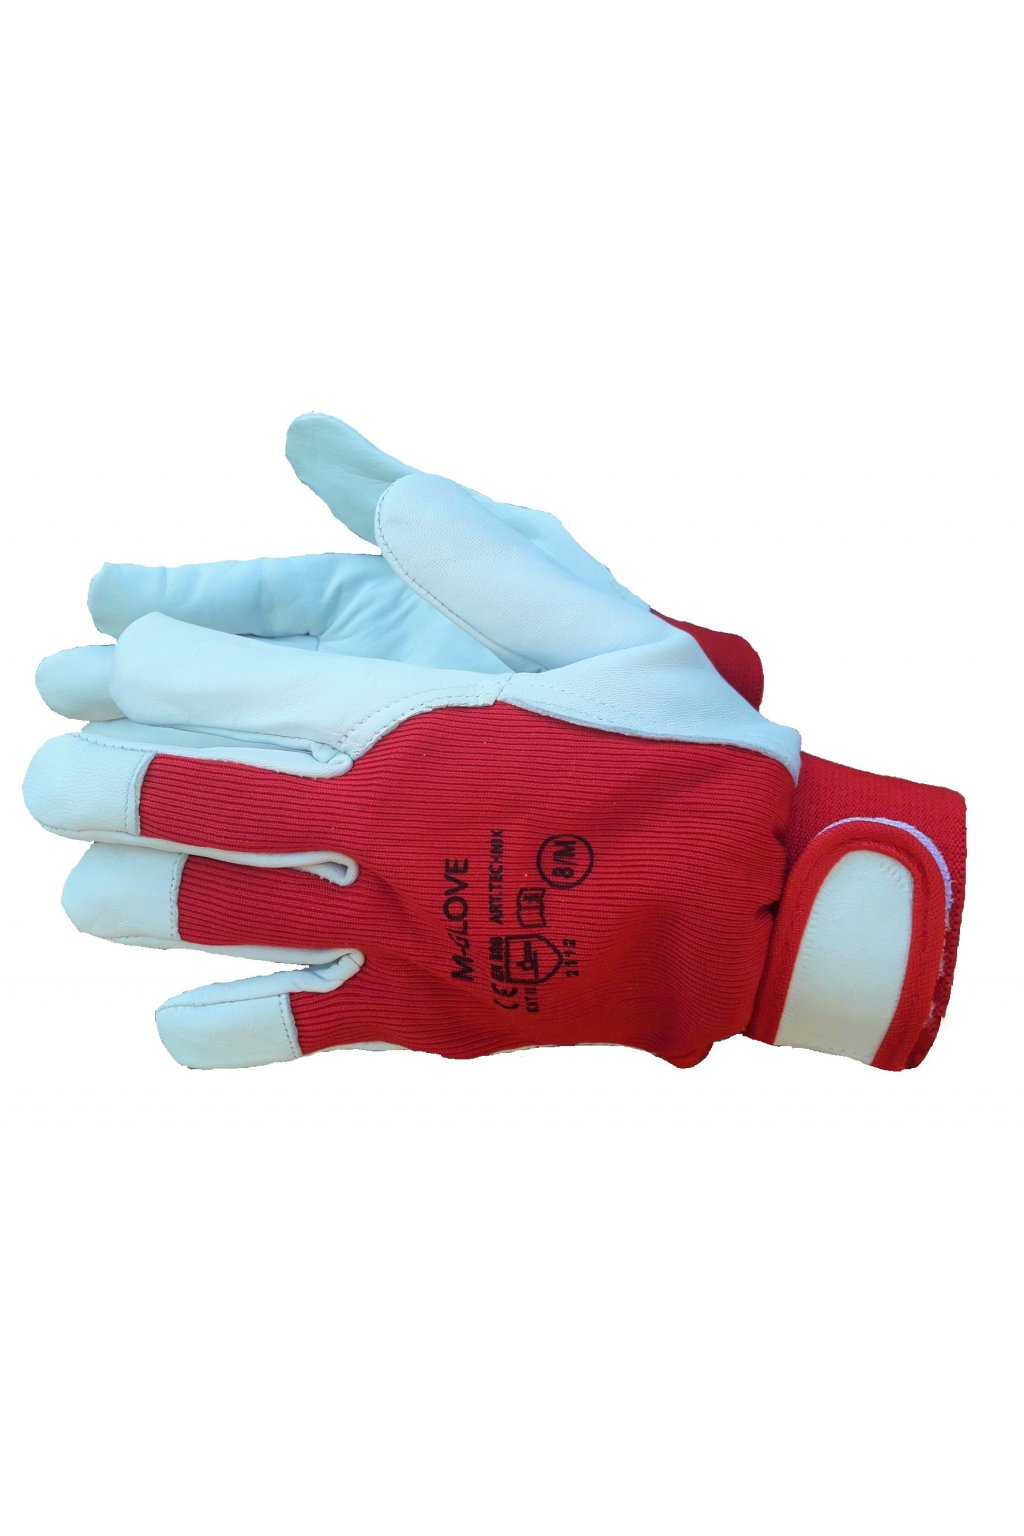 m glove technik 2121